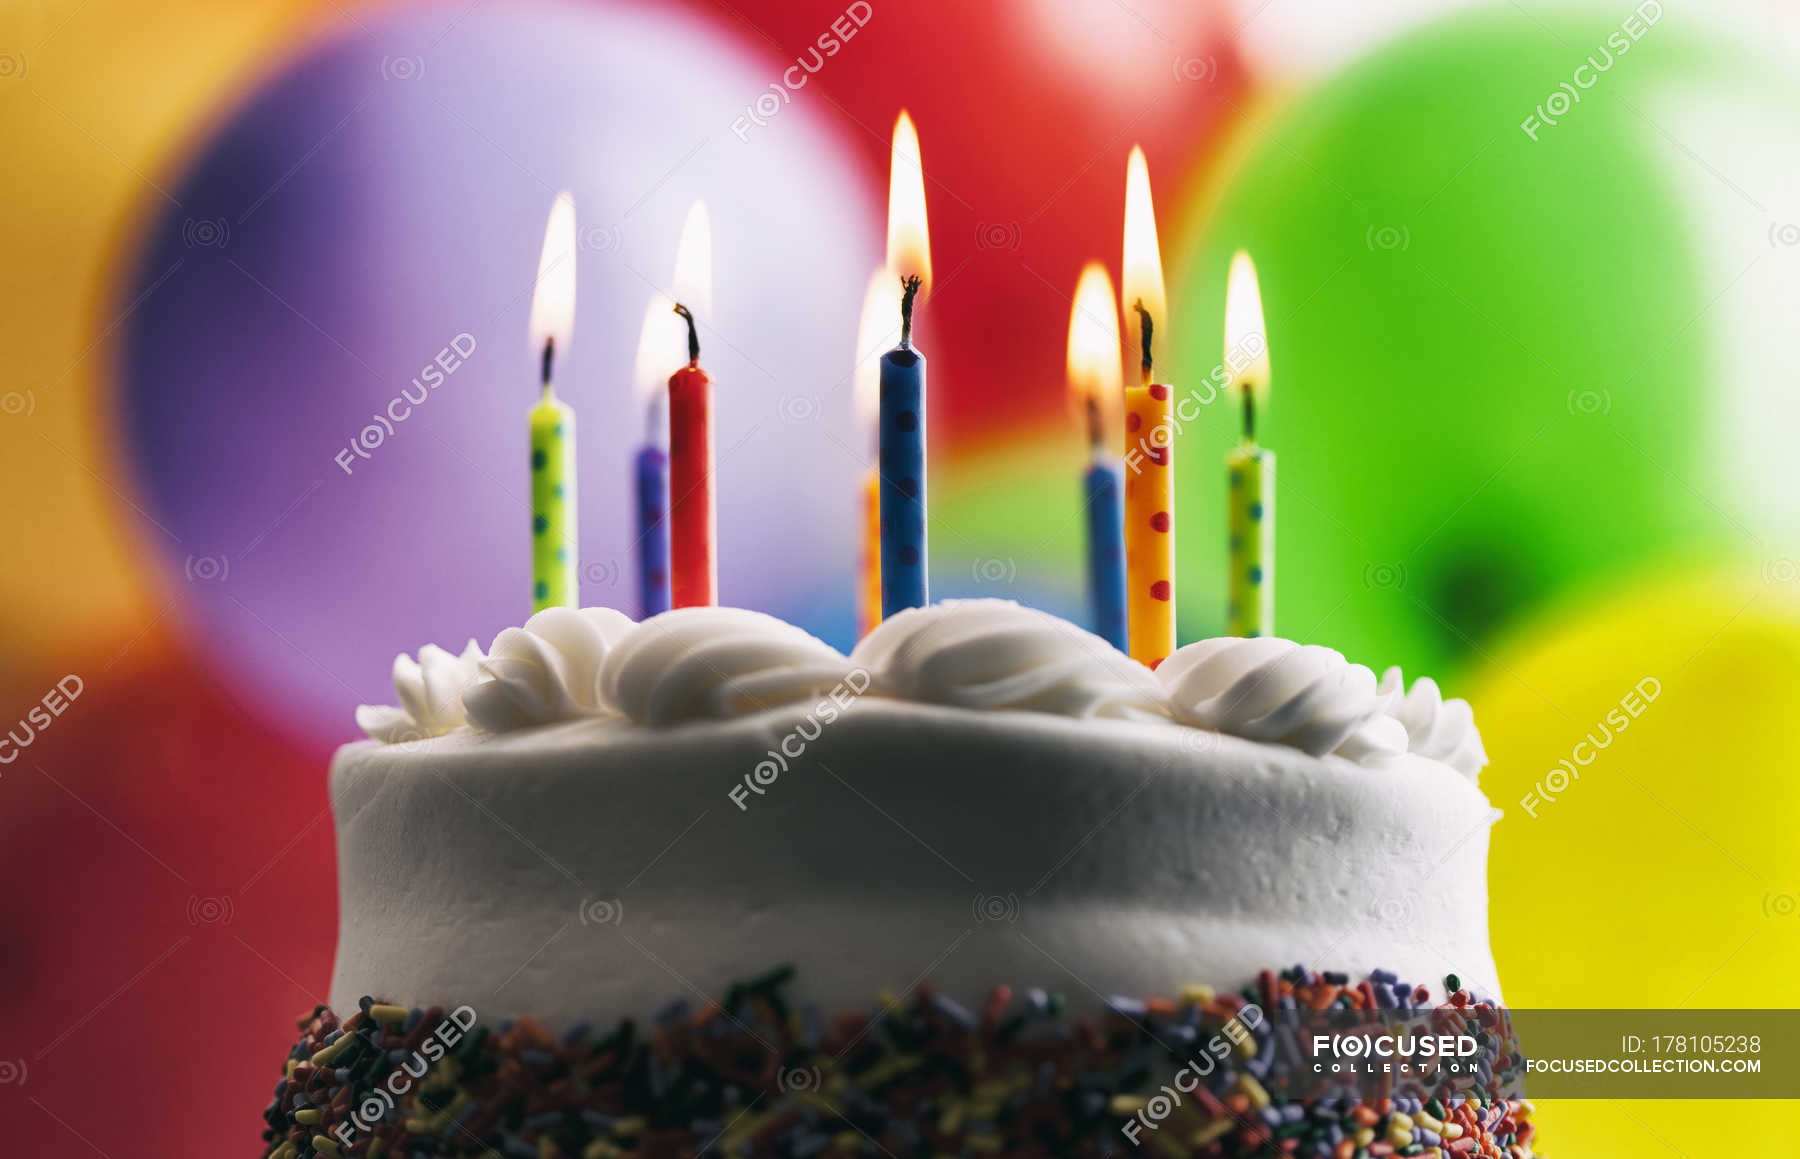 Lighted Birthday Candles On Cake In Front Of Balloons Stock Photo